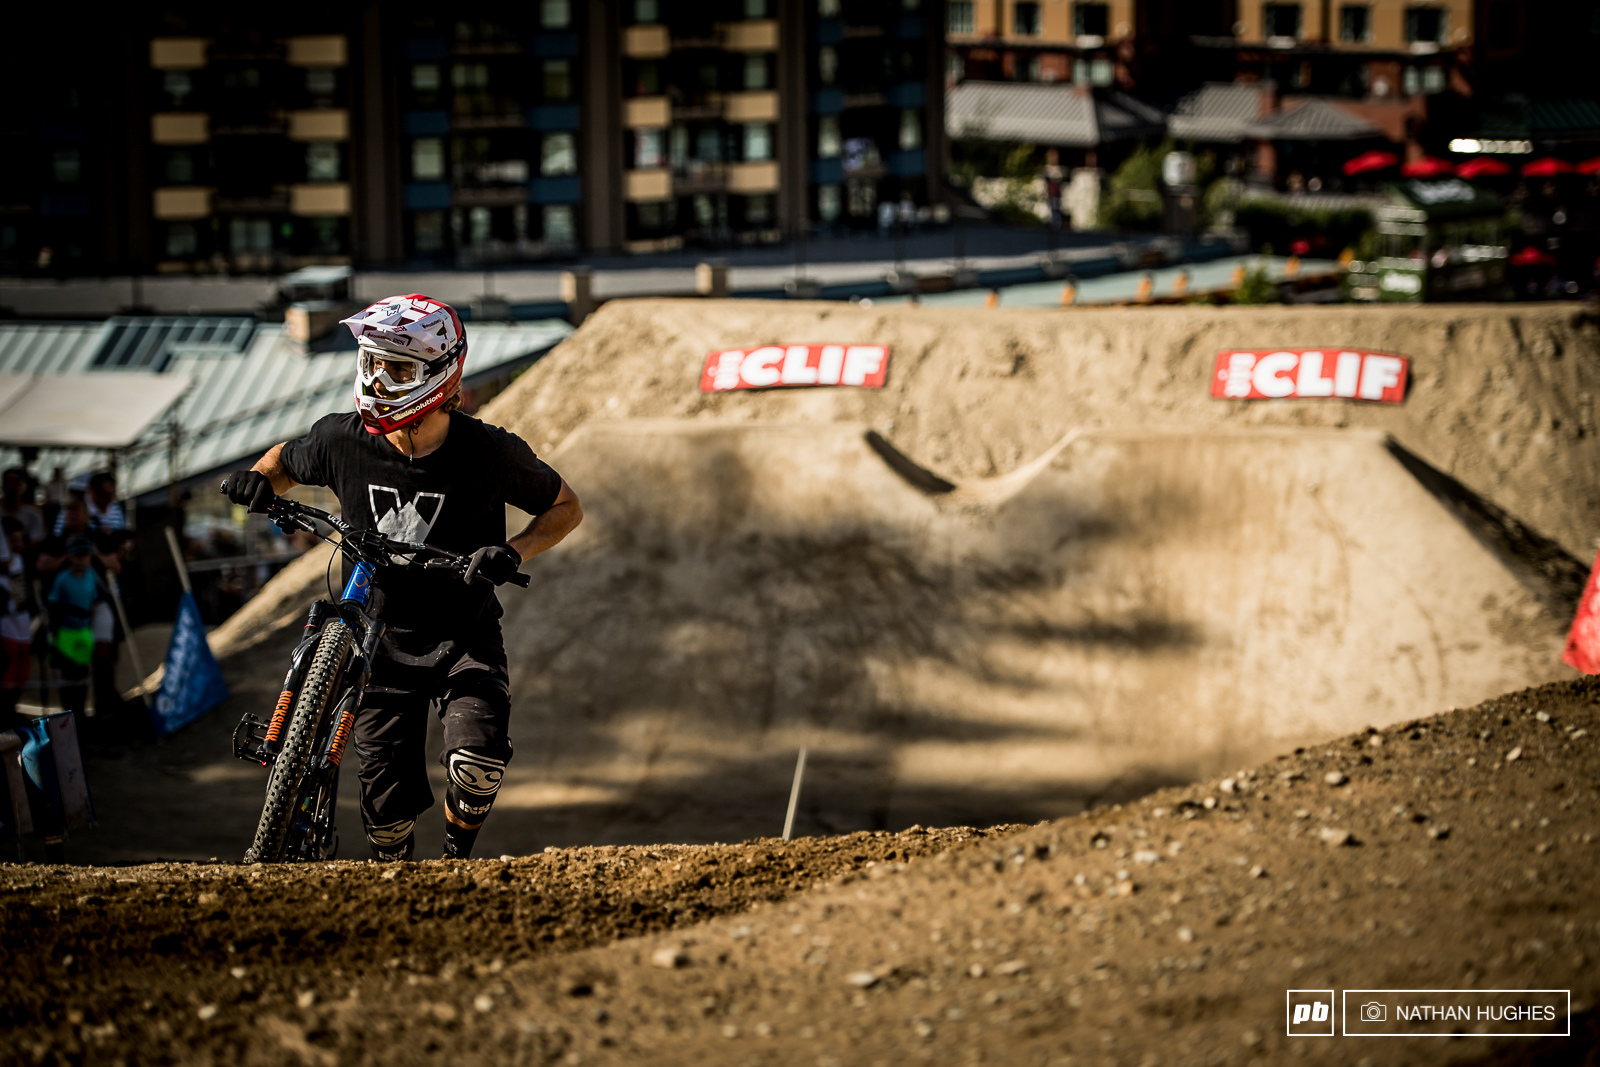 Adrien Loron didn t have the speed and style fortune he hoped for but luckily there s always the brand new pumptrack set-up in the days ahead for a top result.